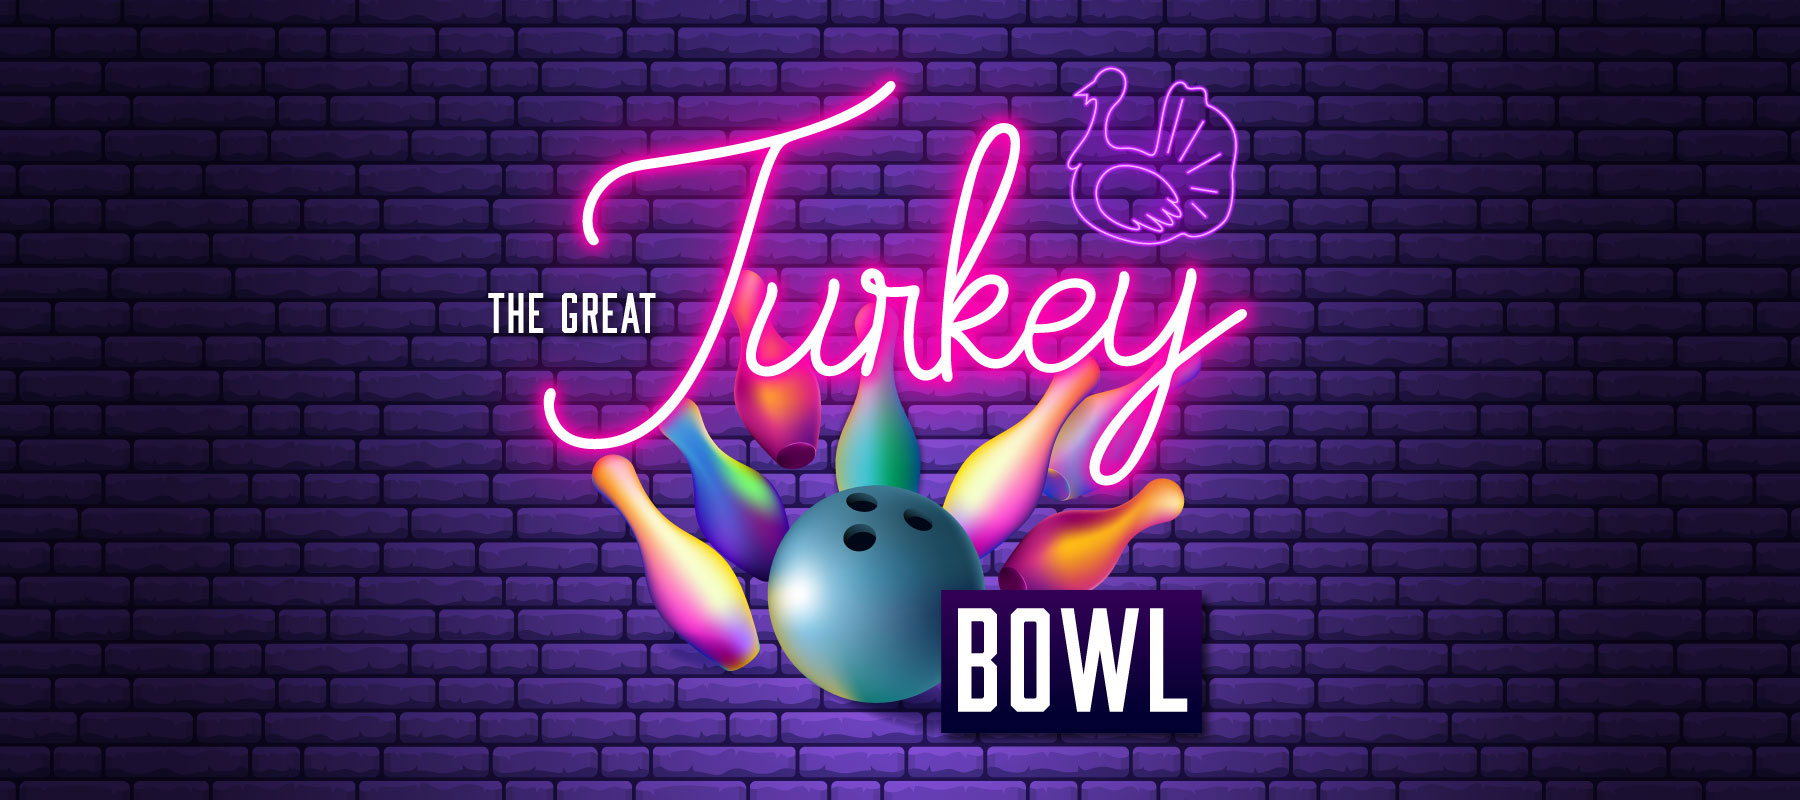 The Great Turkey Bowl